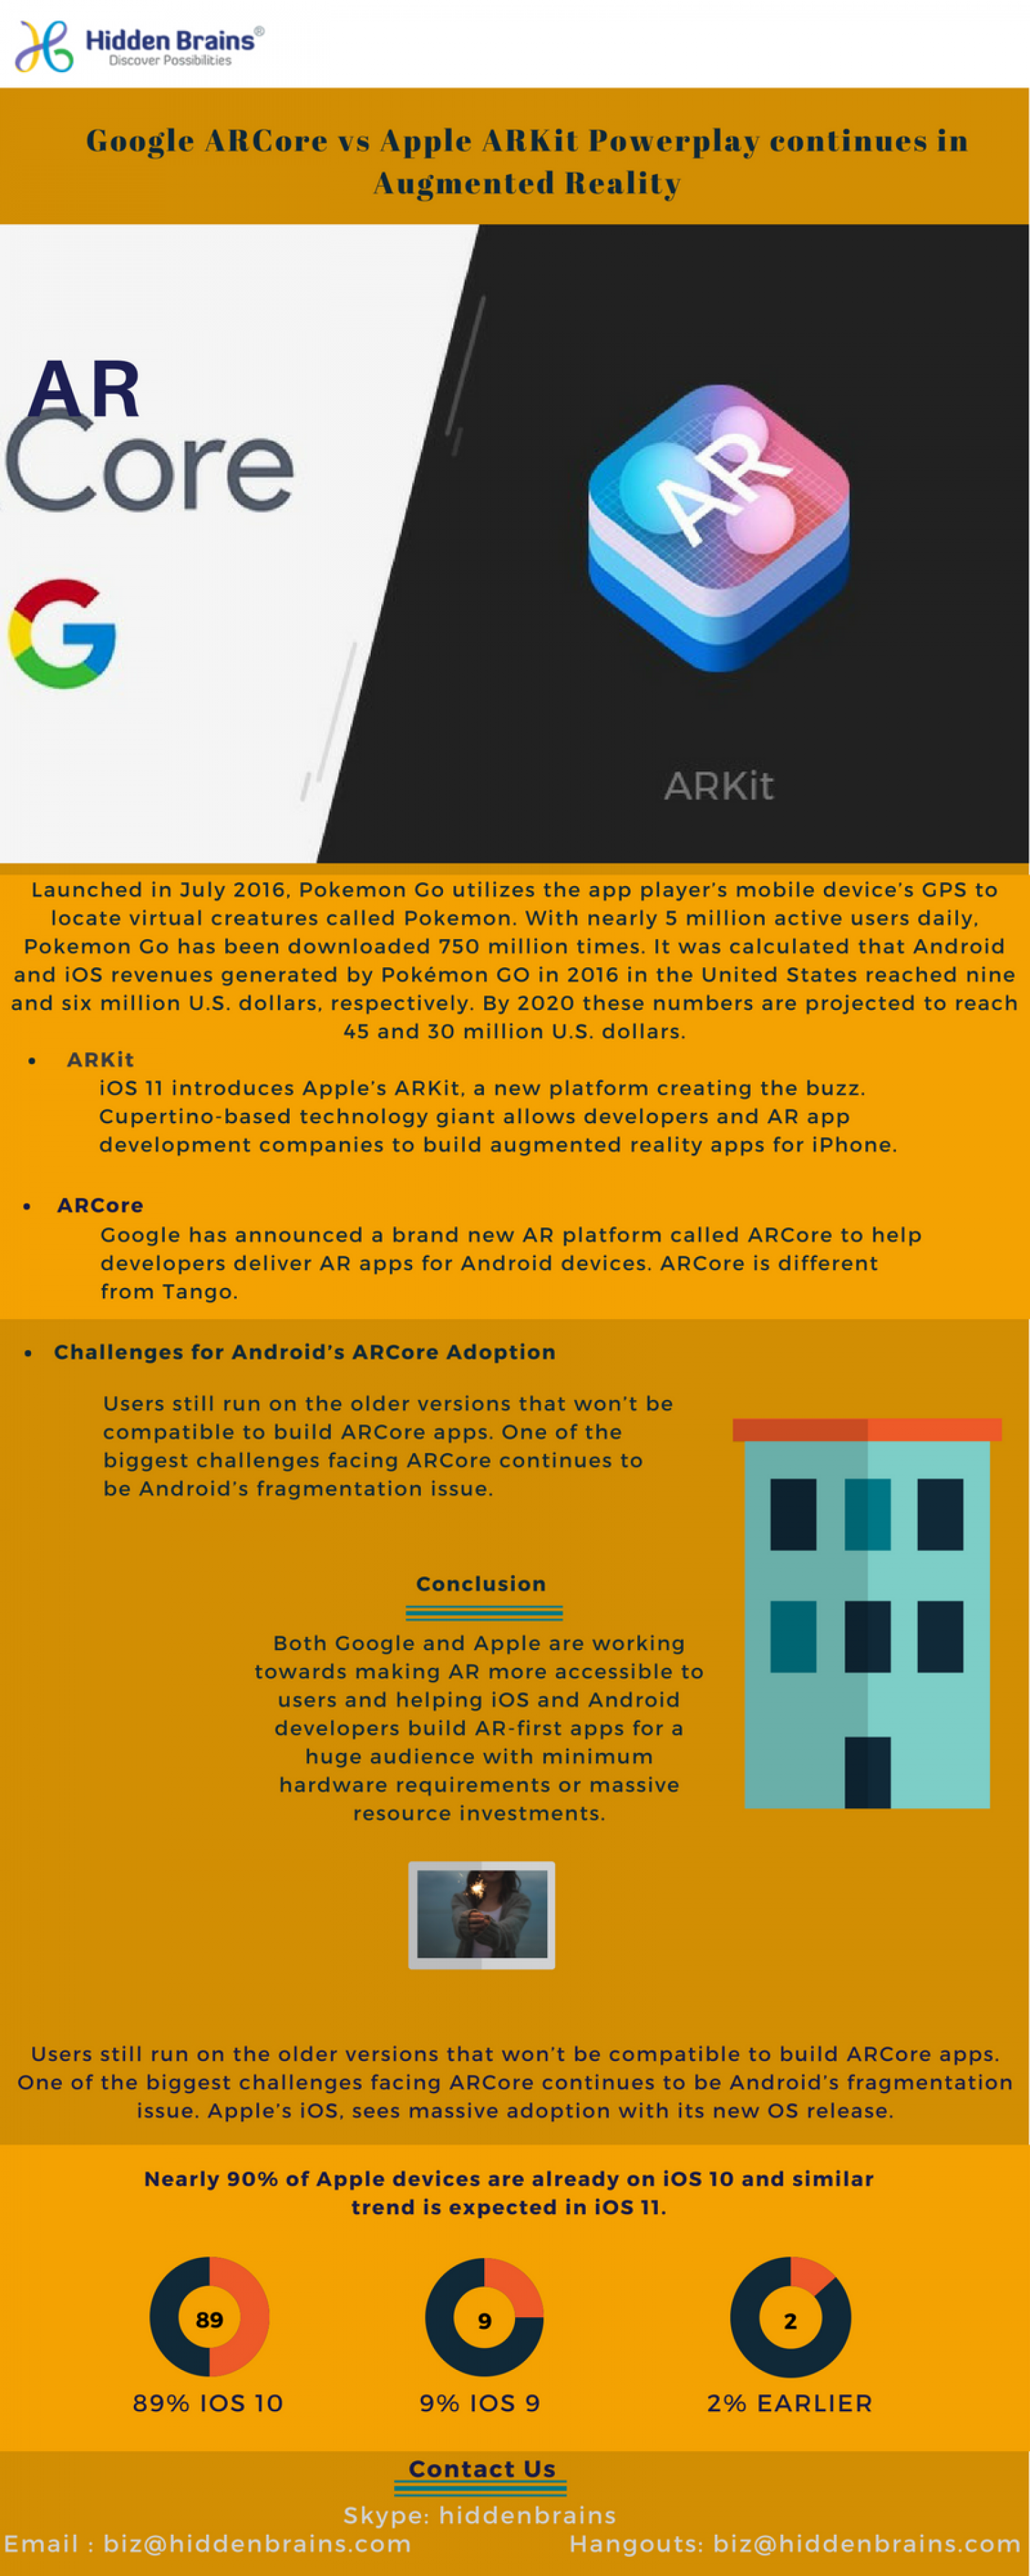 Google ARCore vs Apple ARKit Powerplay continues in Augmented Reality Infographic